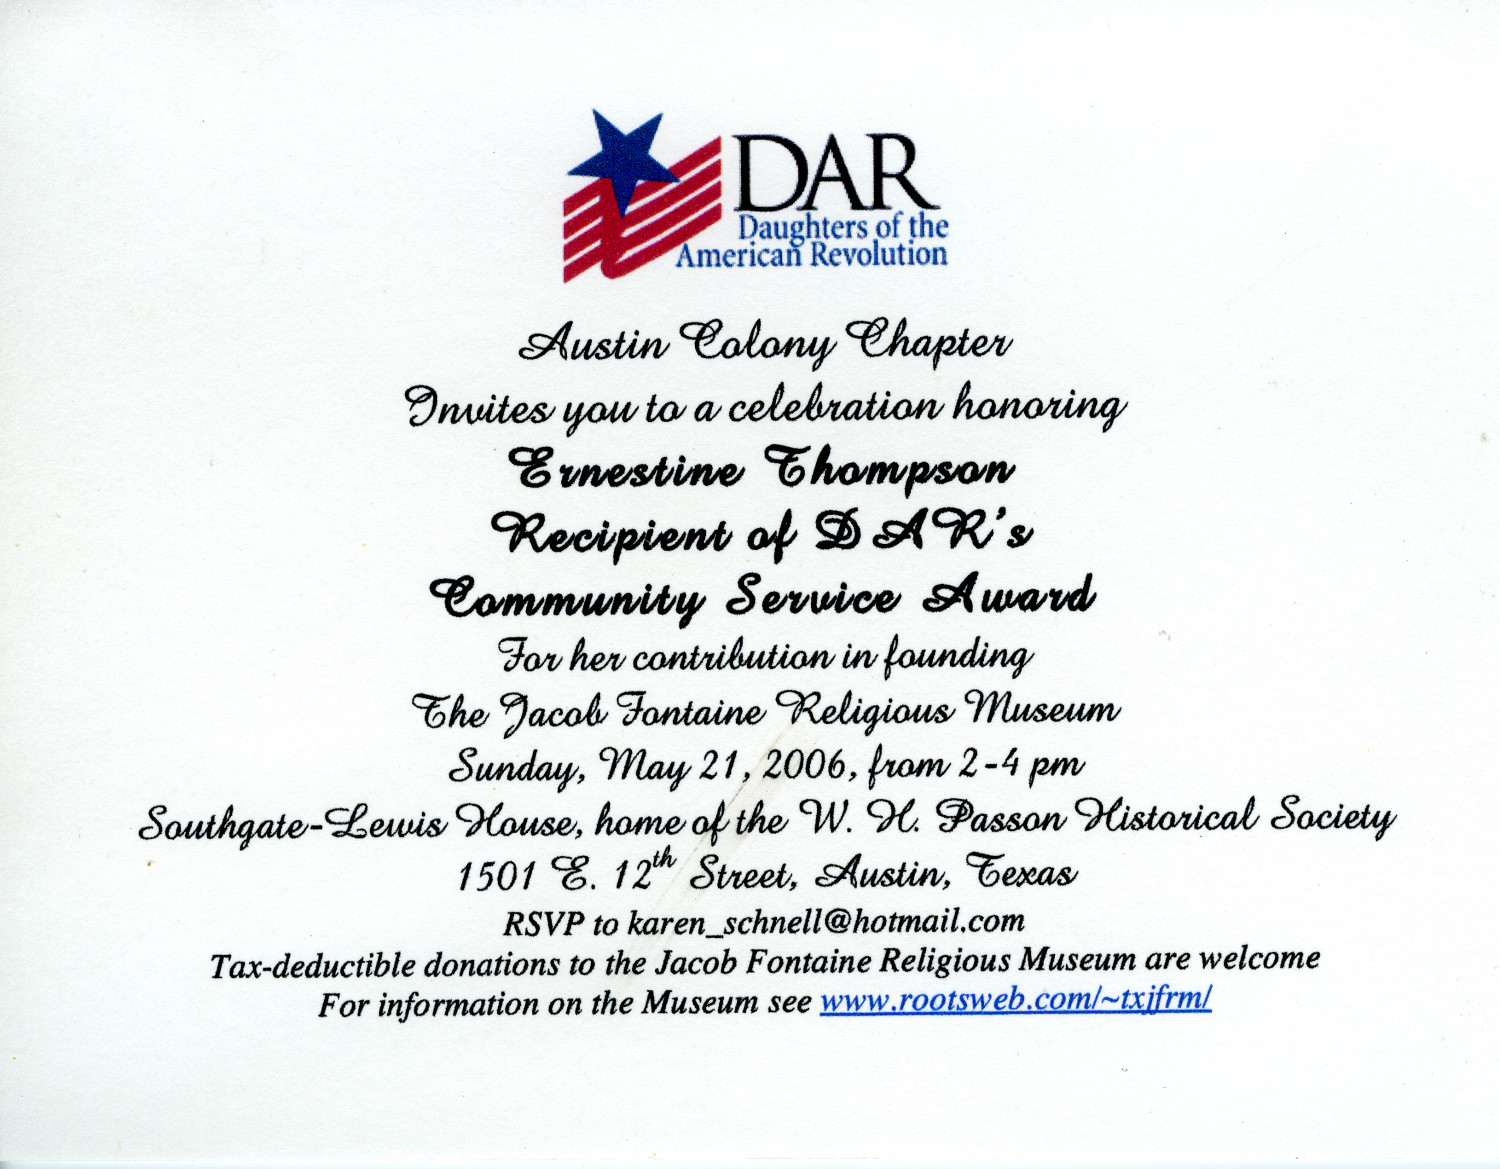 DAR honors Ernestine Thompson                                                                                                      [Sequence #]: 1 of 1